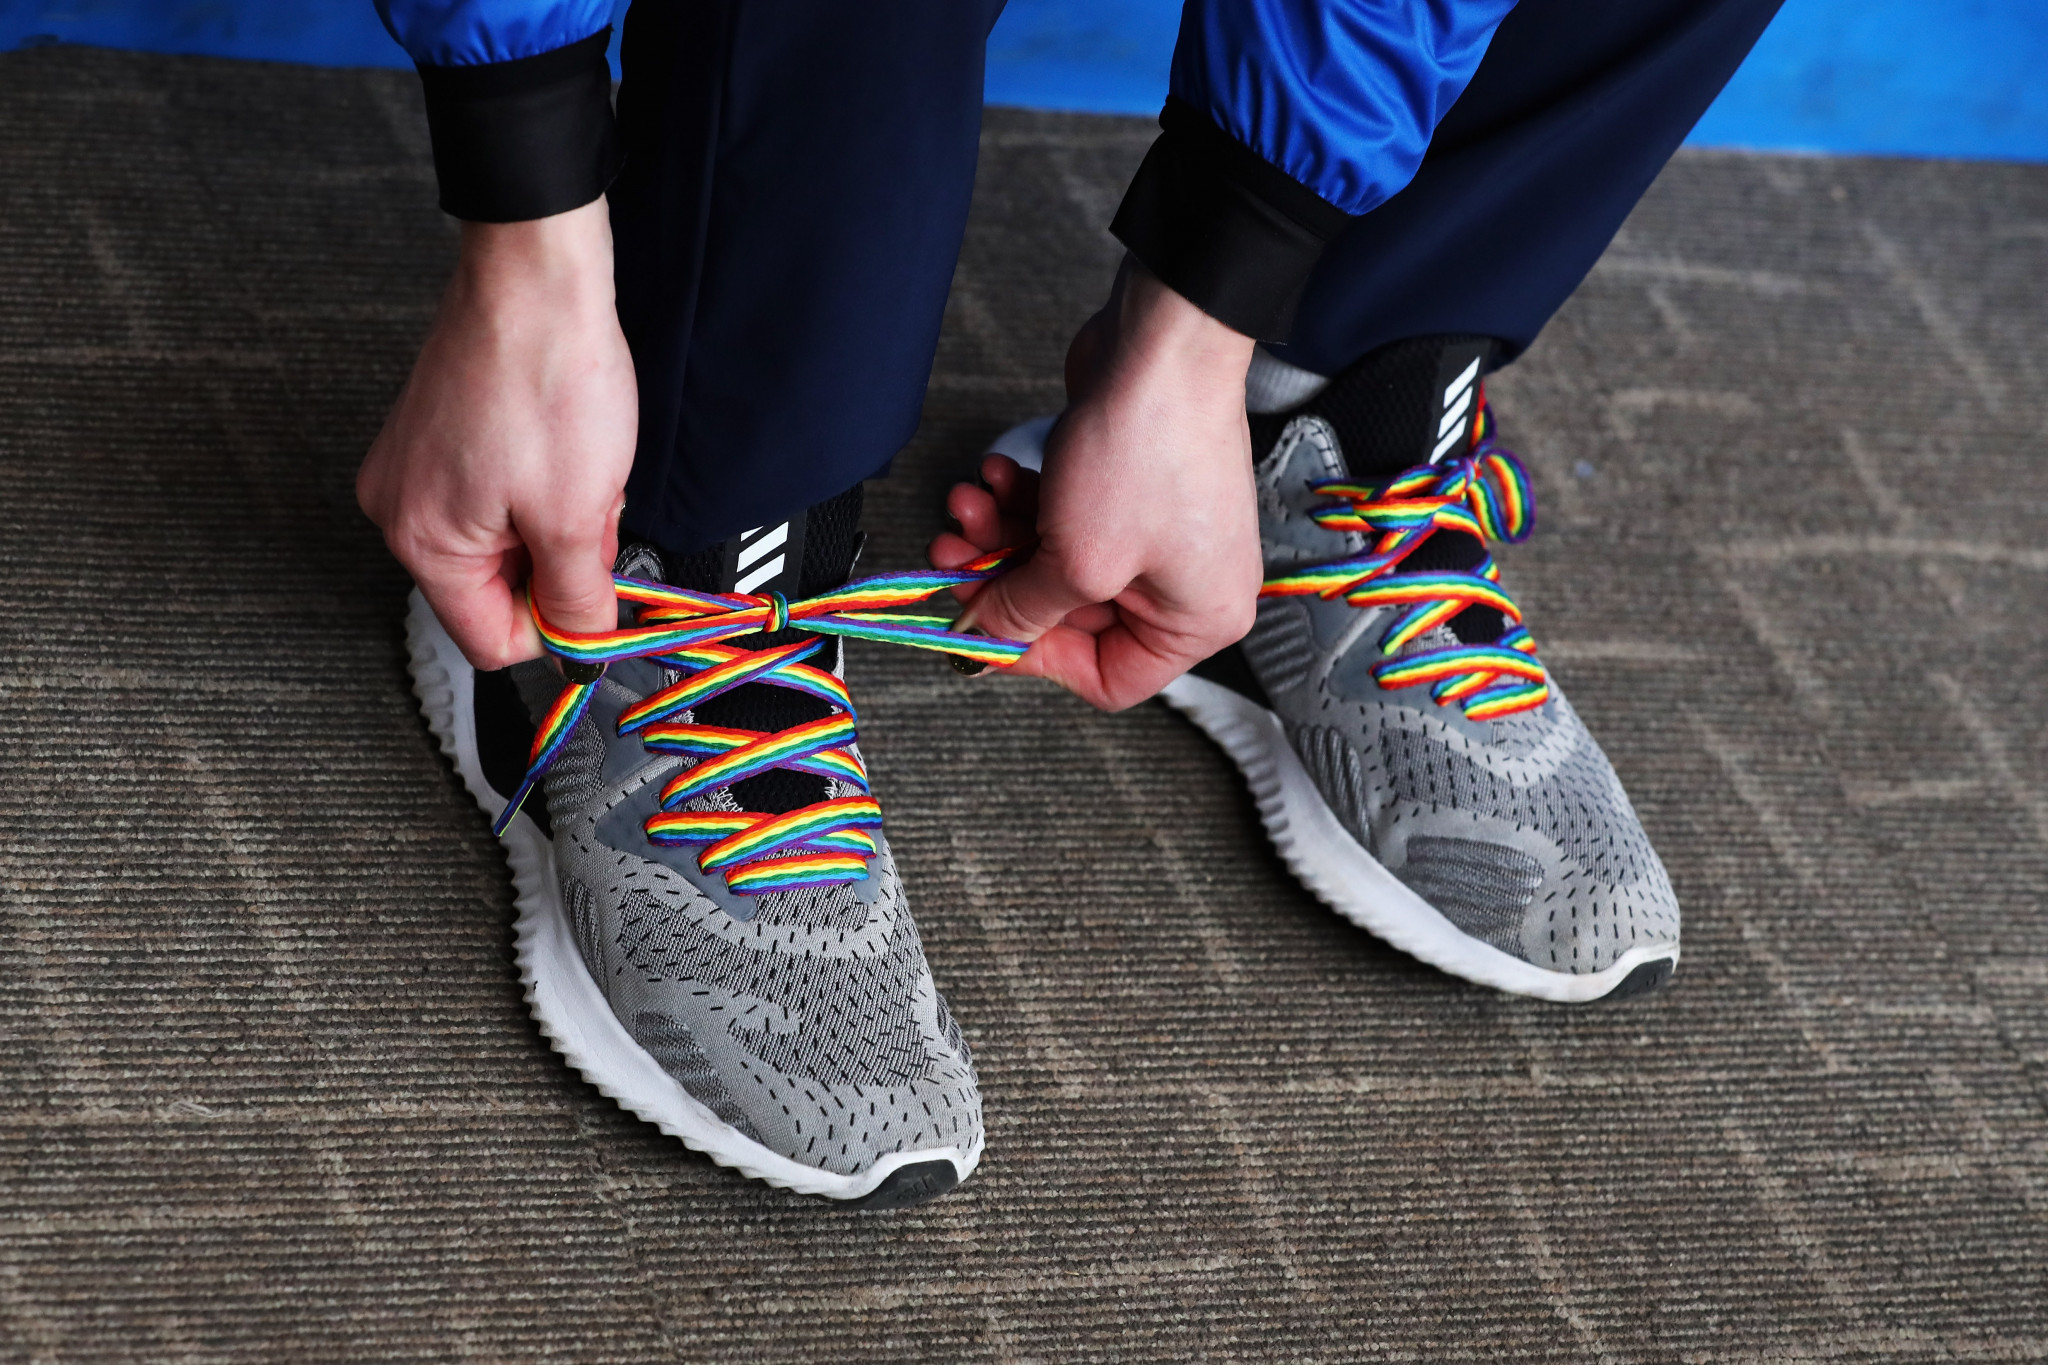 The rainbow laces campaign supports LGBT people ©Getty Images